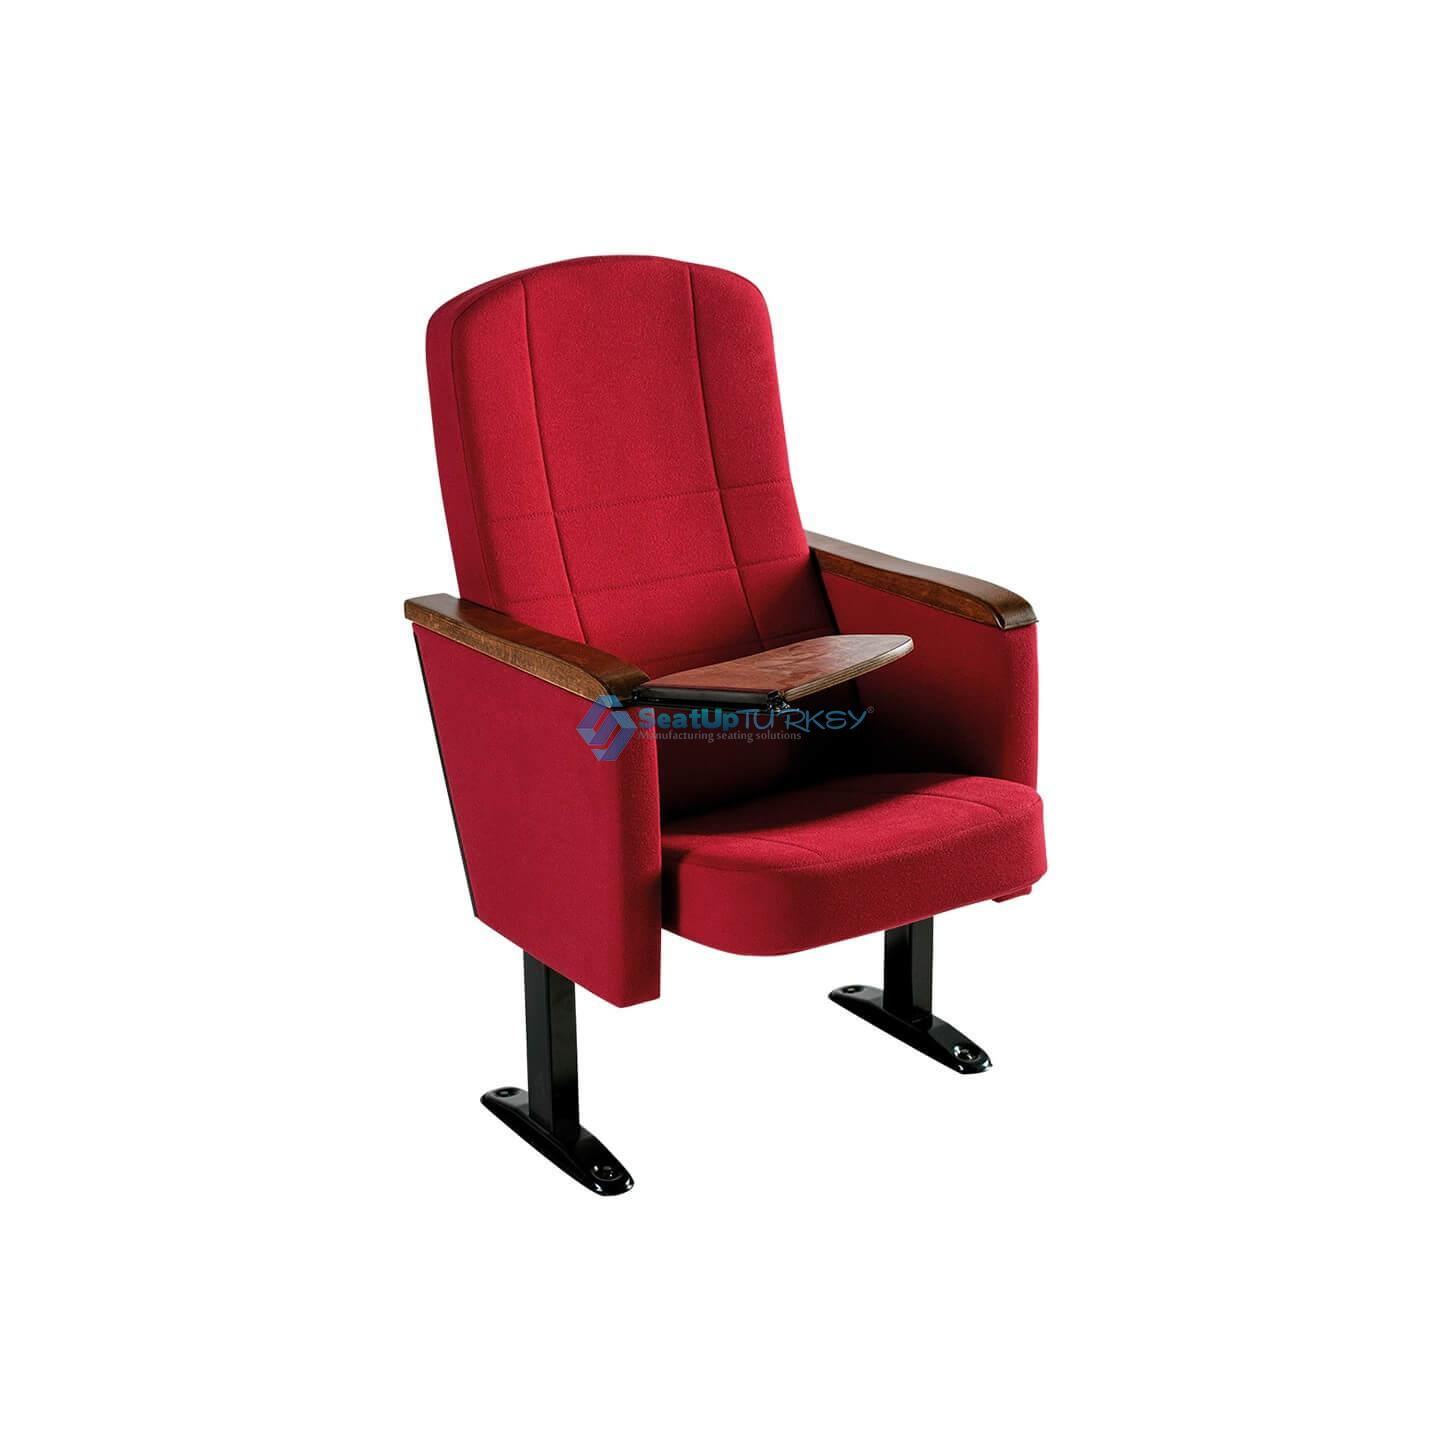 Turkey Chair Basic Z 8 The Best Auditorium Chair Seatup Turkey